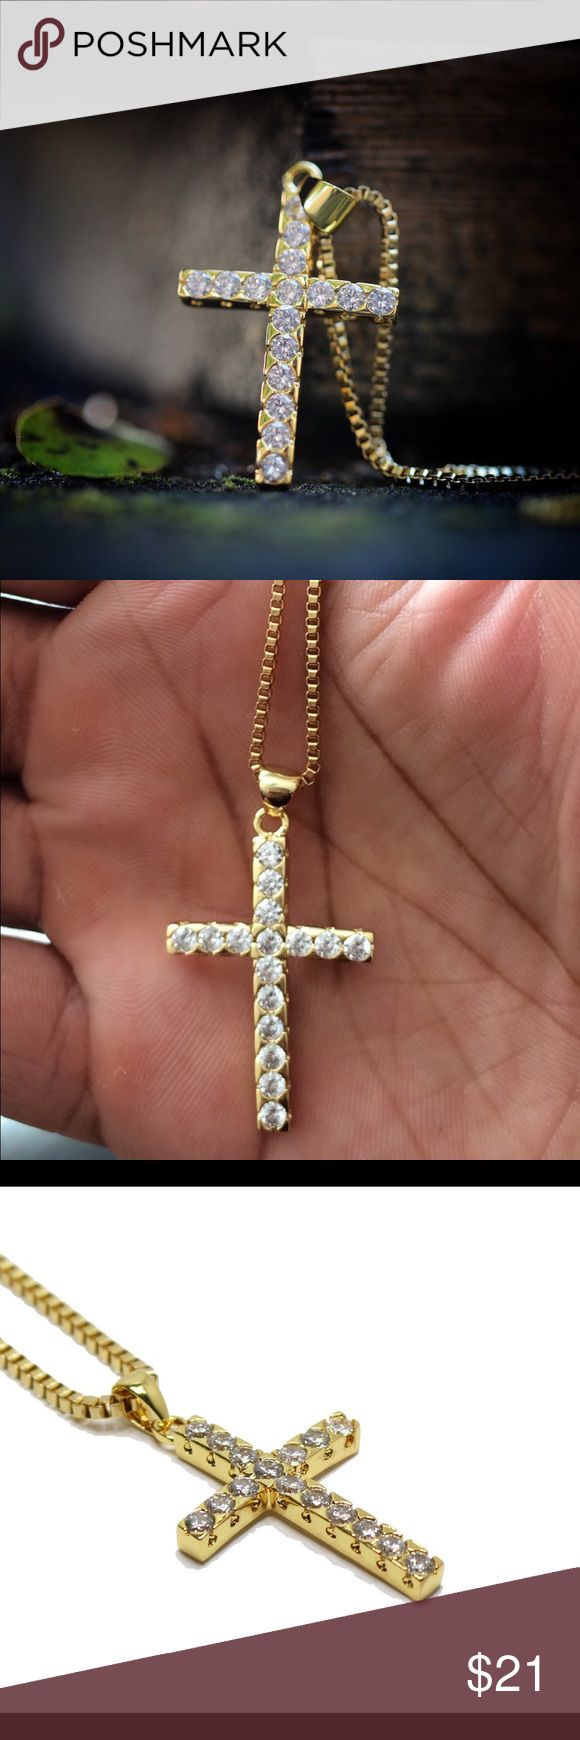 14K Gold Plated Hip Hop Cross Chain This cross piece and chain is made of stainless steel with a 14K gold plating on top.Comes with a 20,22,24 or 26 inch 2mm stainless steel 14K Gold Plated box chain.The length of this piece is 15mm (Mini Micro Size). Ts Verniel  Jewelry Necklaces